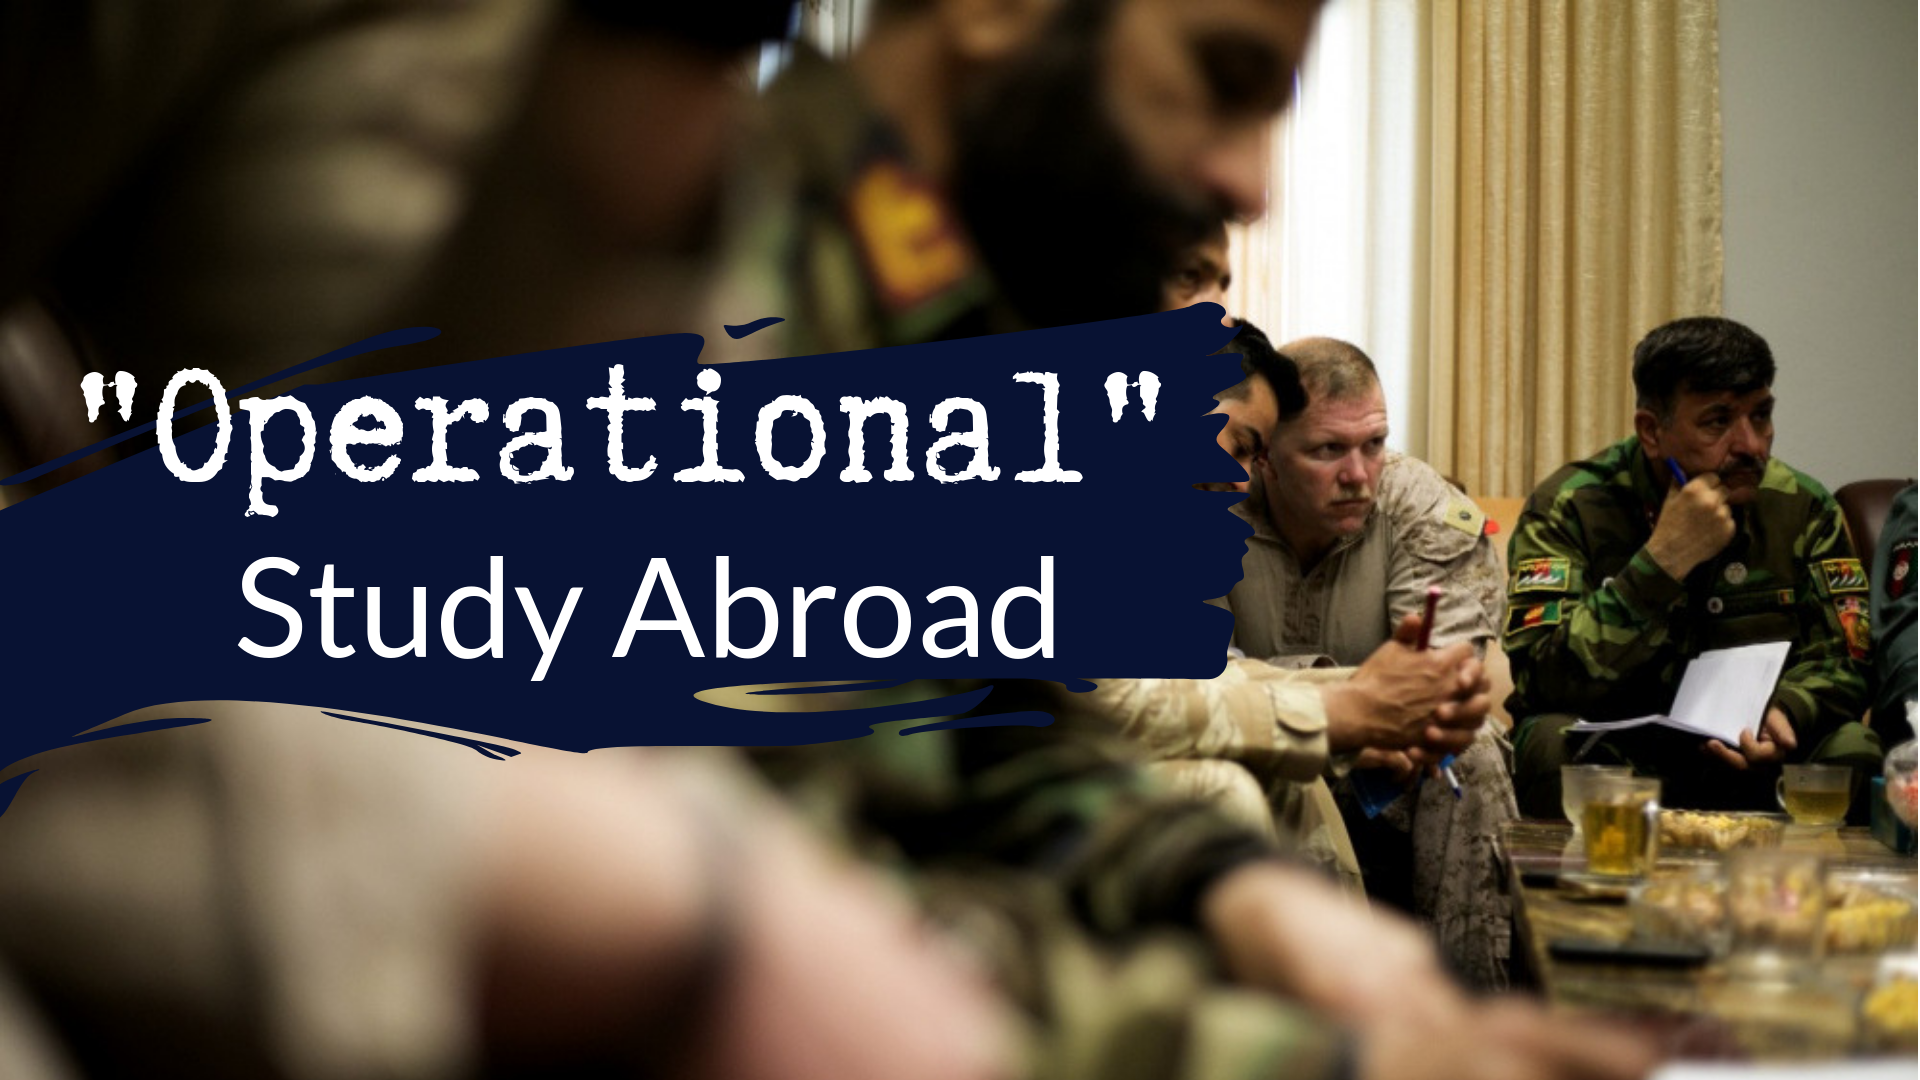 Operational Study Abroad advising and security force assistance